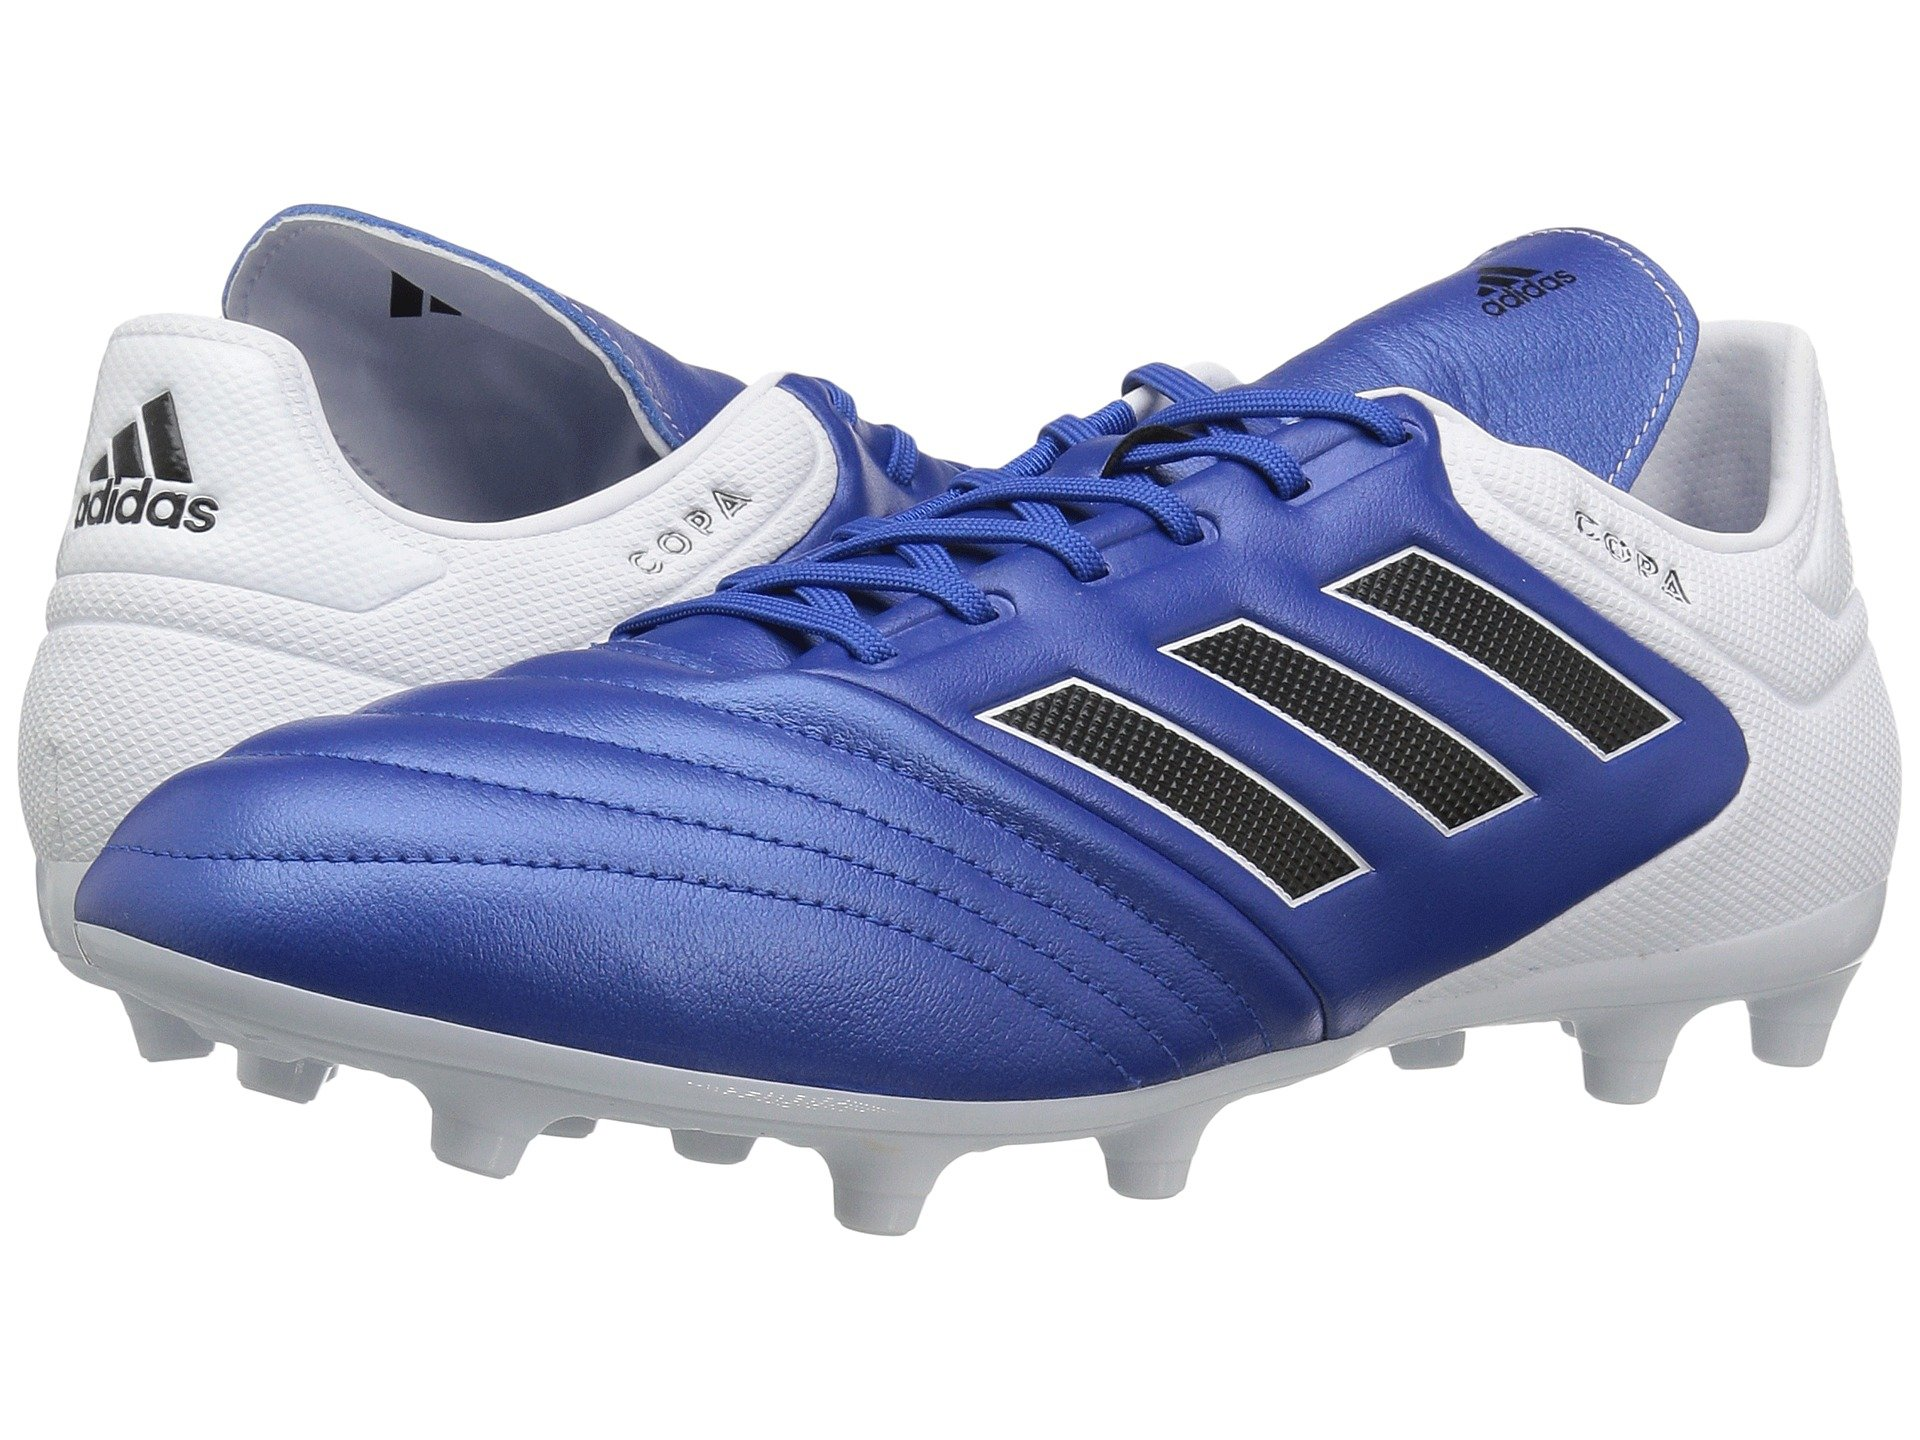 a6622013073c Adidas Originals Copa 17.3 Fg, Blue/Core Black/Footwear White | ModeSens